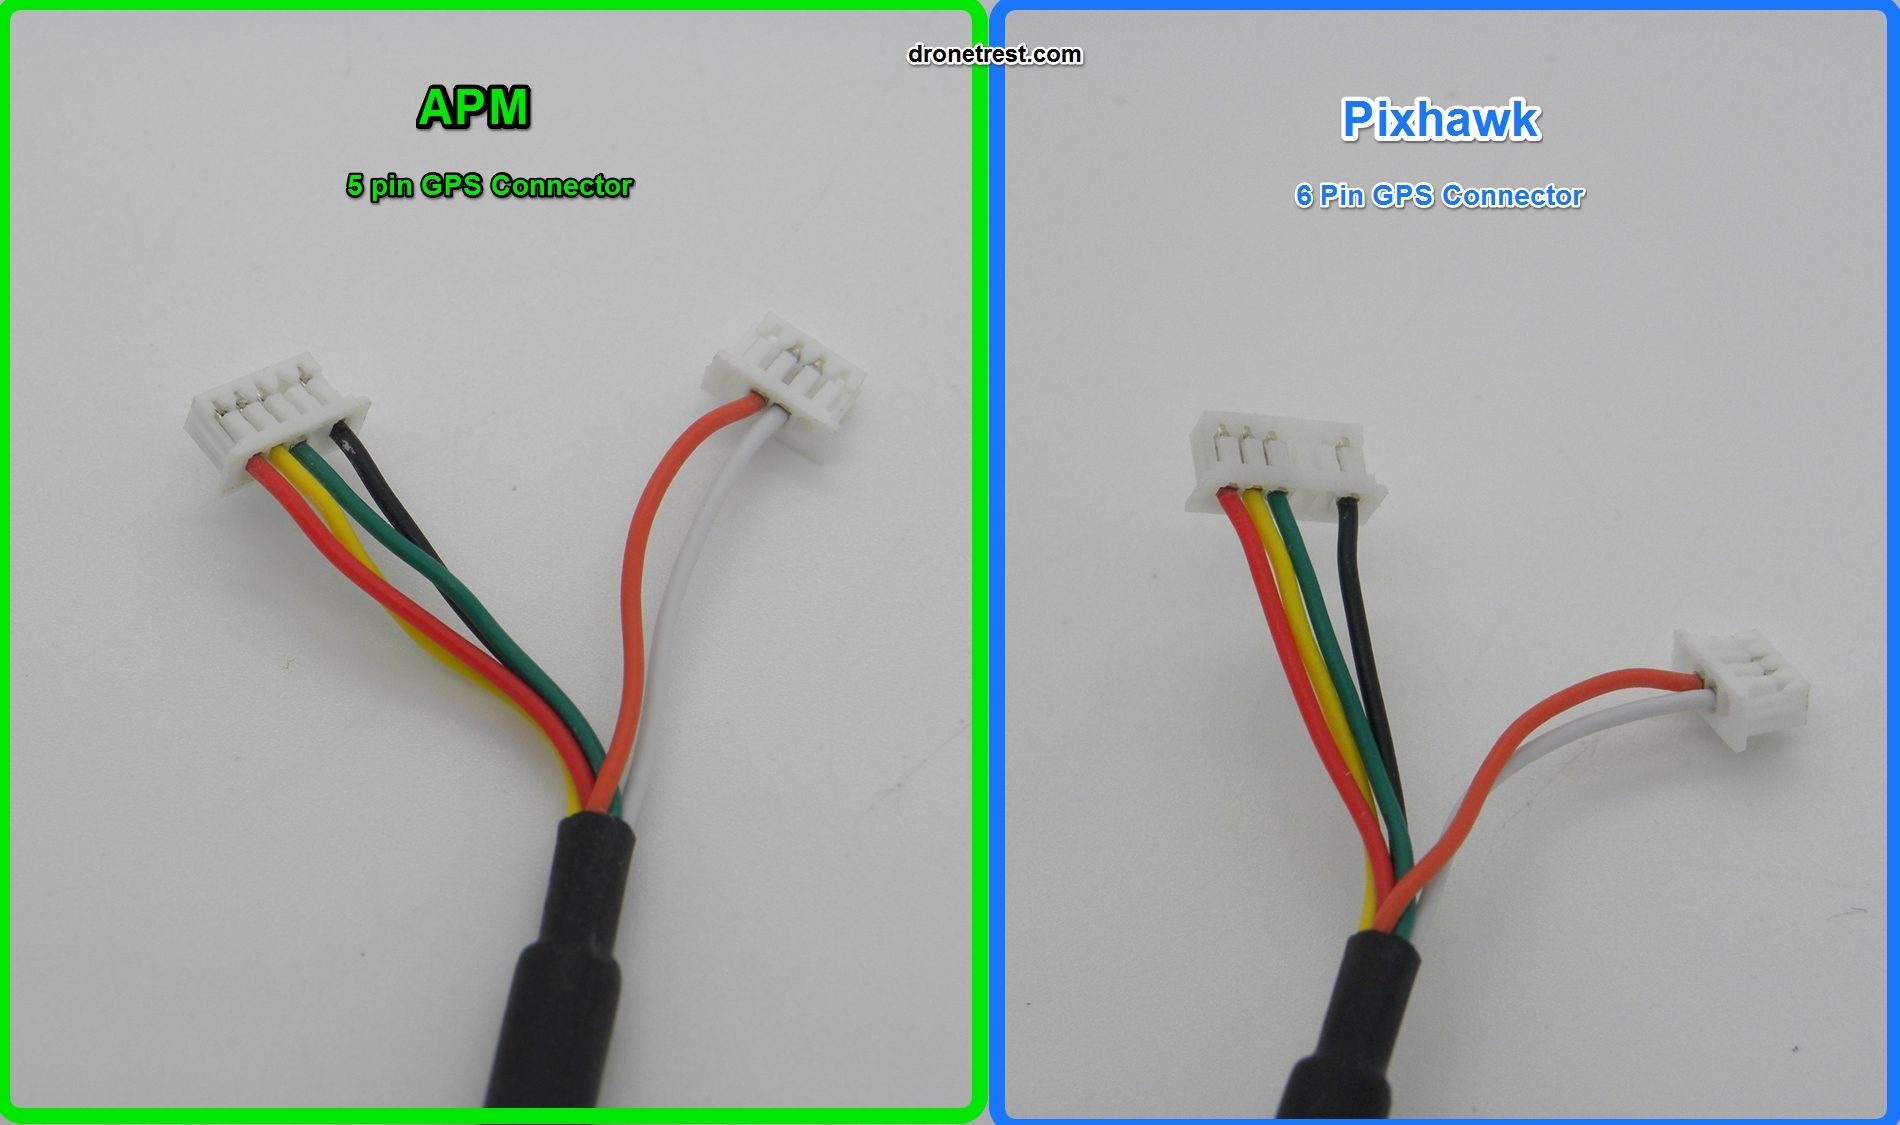 Swapping Neo 7n Neo M8n Gps Connector For Pixhawk Apm